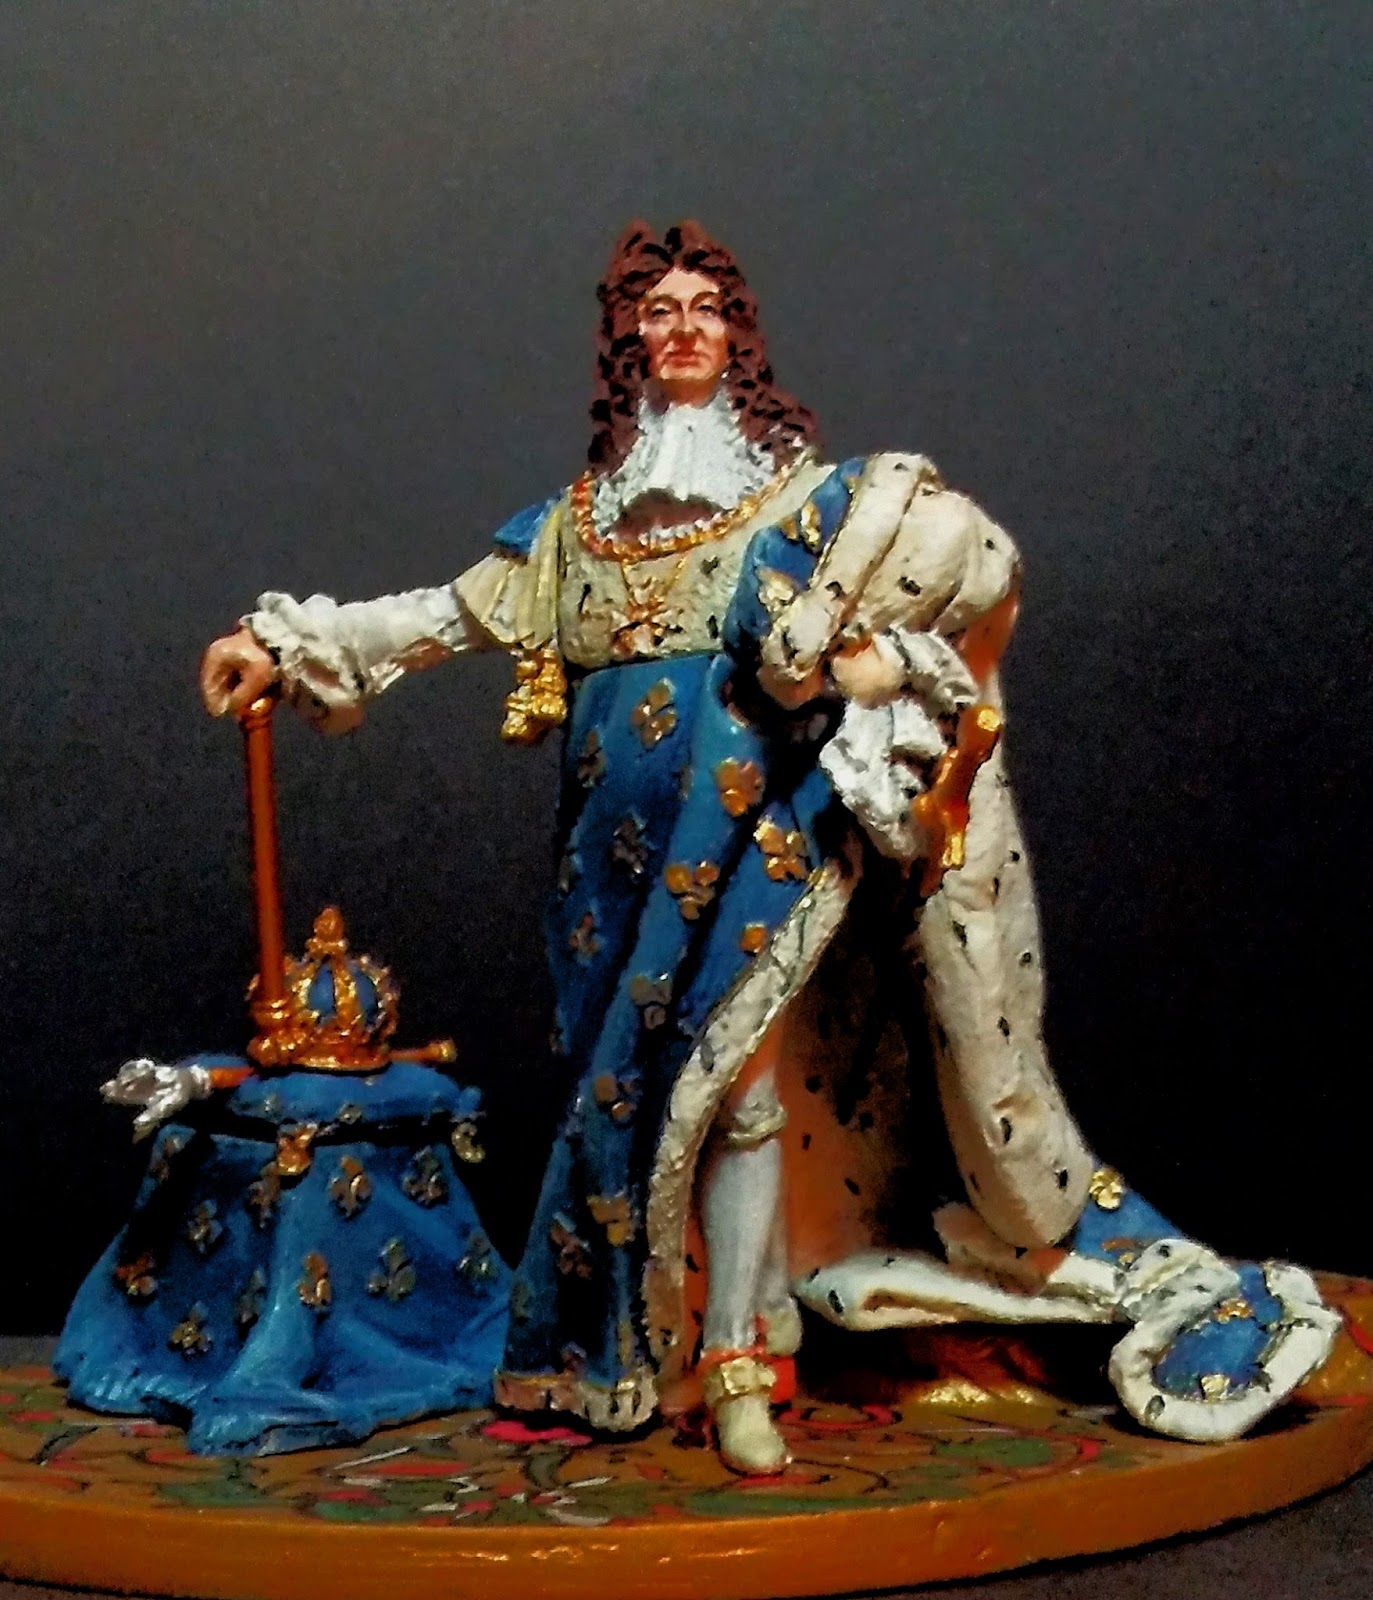 a biography of louis xiv the sun king of france Even though louis xiv was now of age, the cardinal remained the dominant authority in french politics french kings gained respect as a soldier louis though praised within his country, outside of france louis had a vicious reputation he allowed his armies to commit atrocities, and countries.